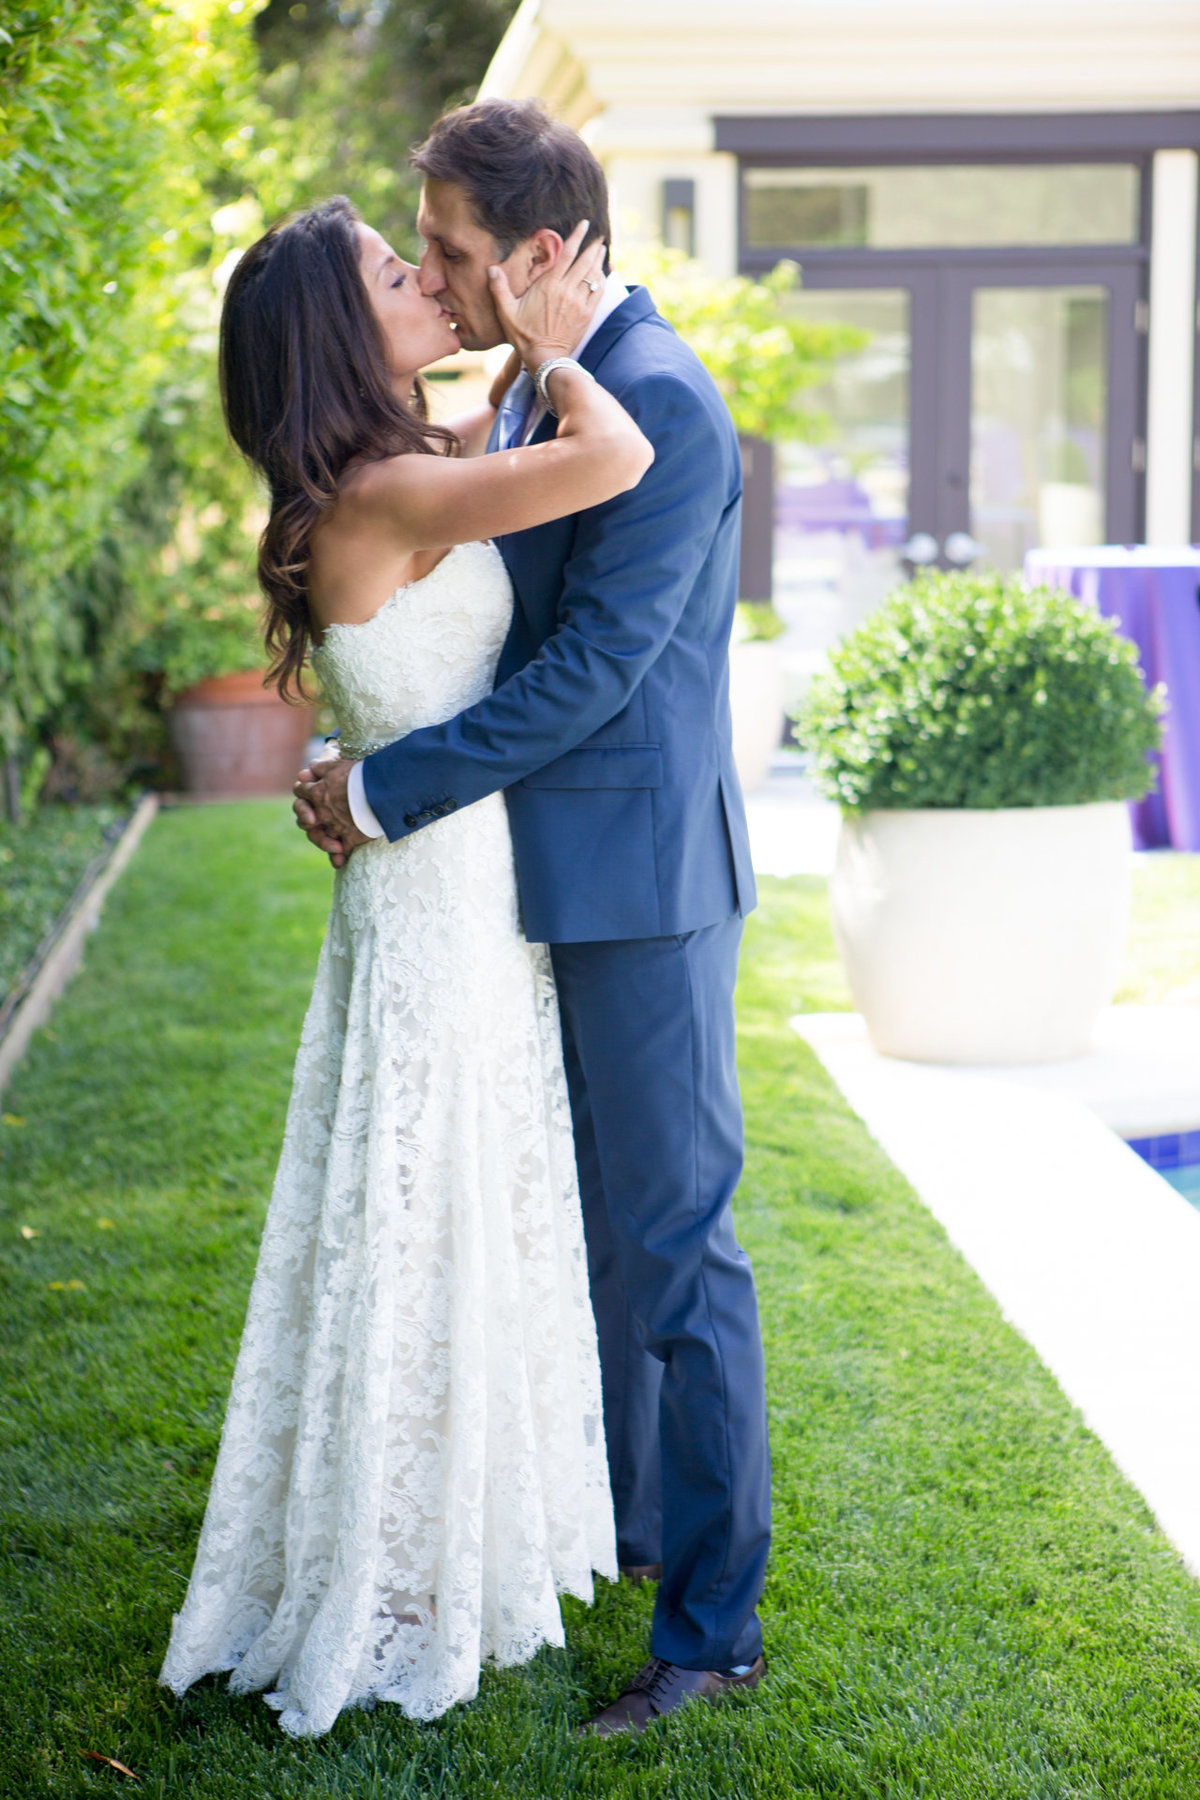 First Look and First Kiss Wedding Photography in Atherton California